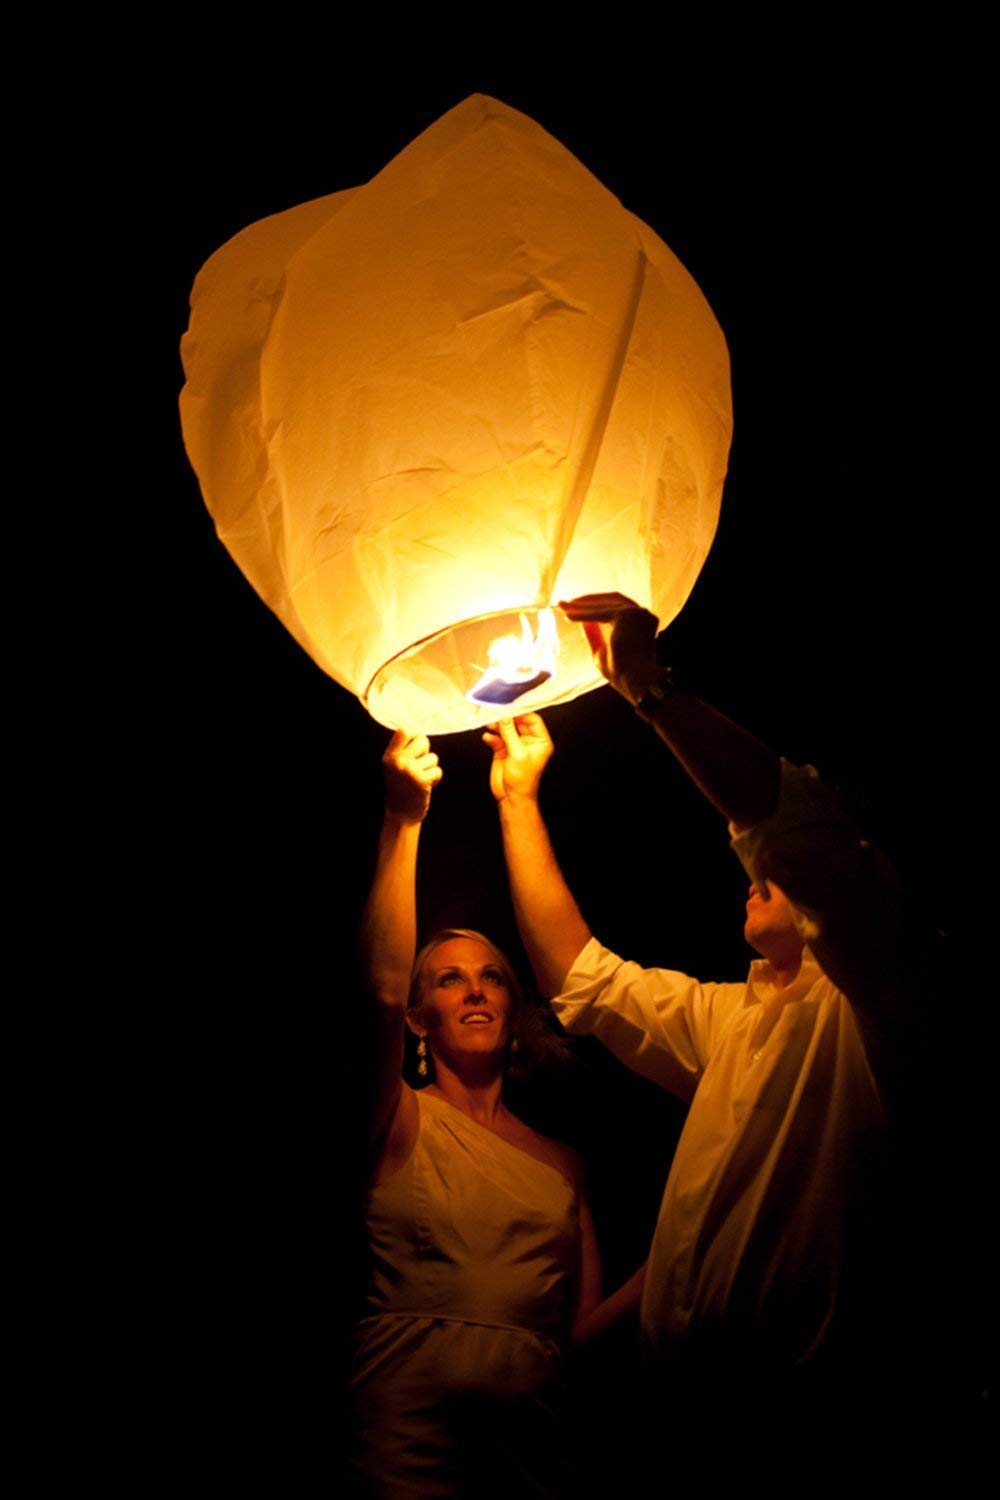 Chinese Paper Flying Sky Lanterns(10 Pack) - 100% Biodegradable, White Environmentally Friendly Lanterns for Wedding, Christmas, Memorial, Party etc (Diamond) by Libershine